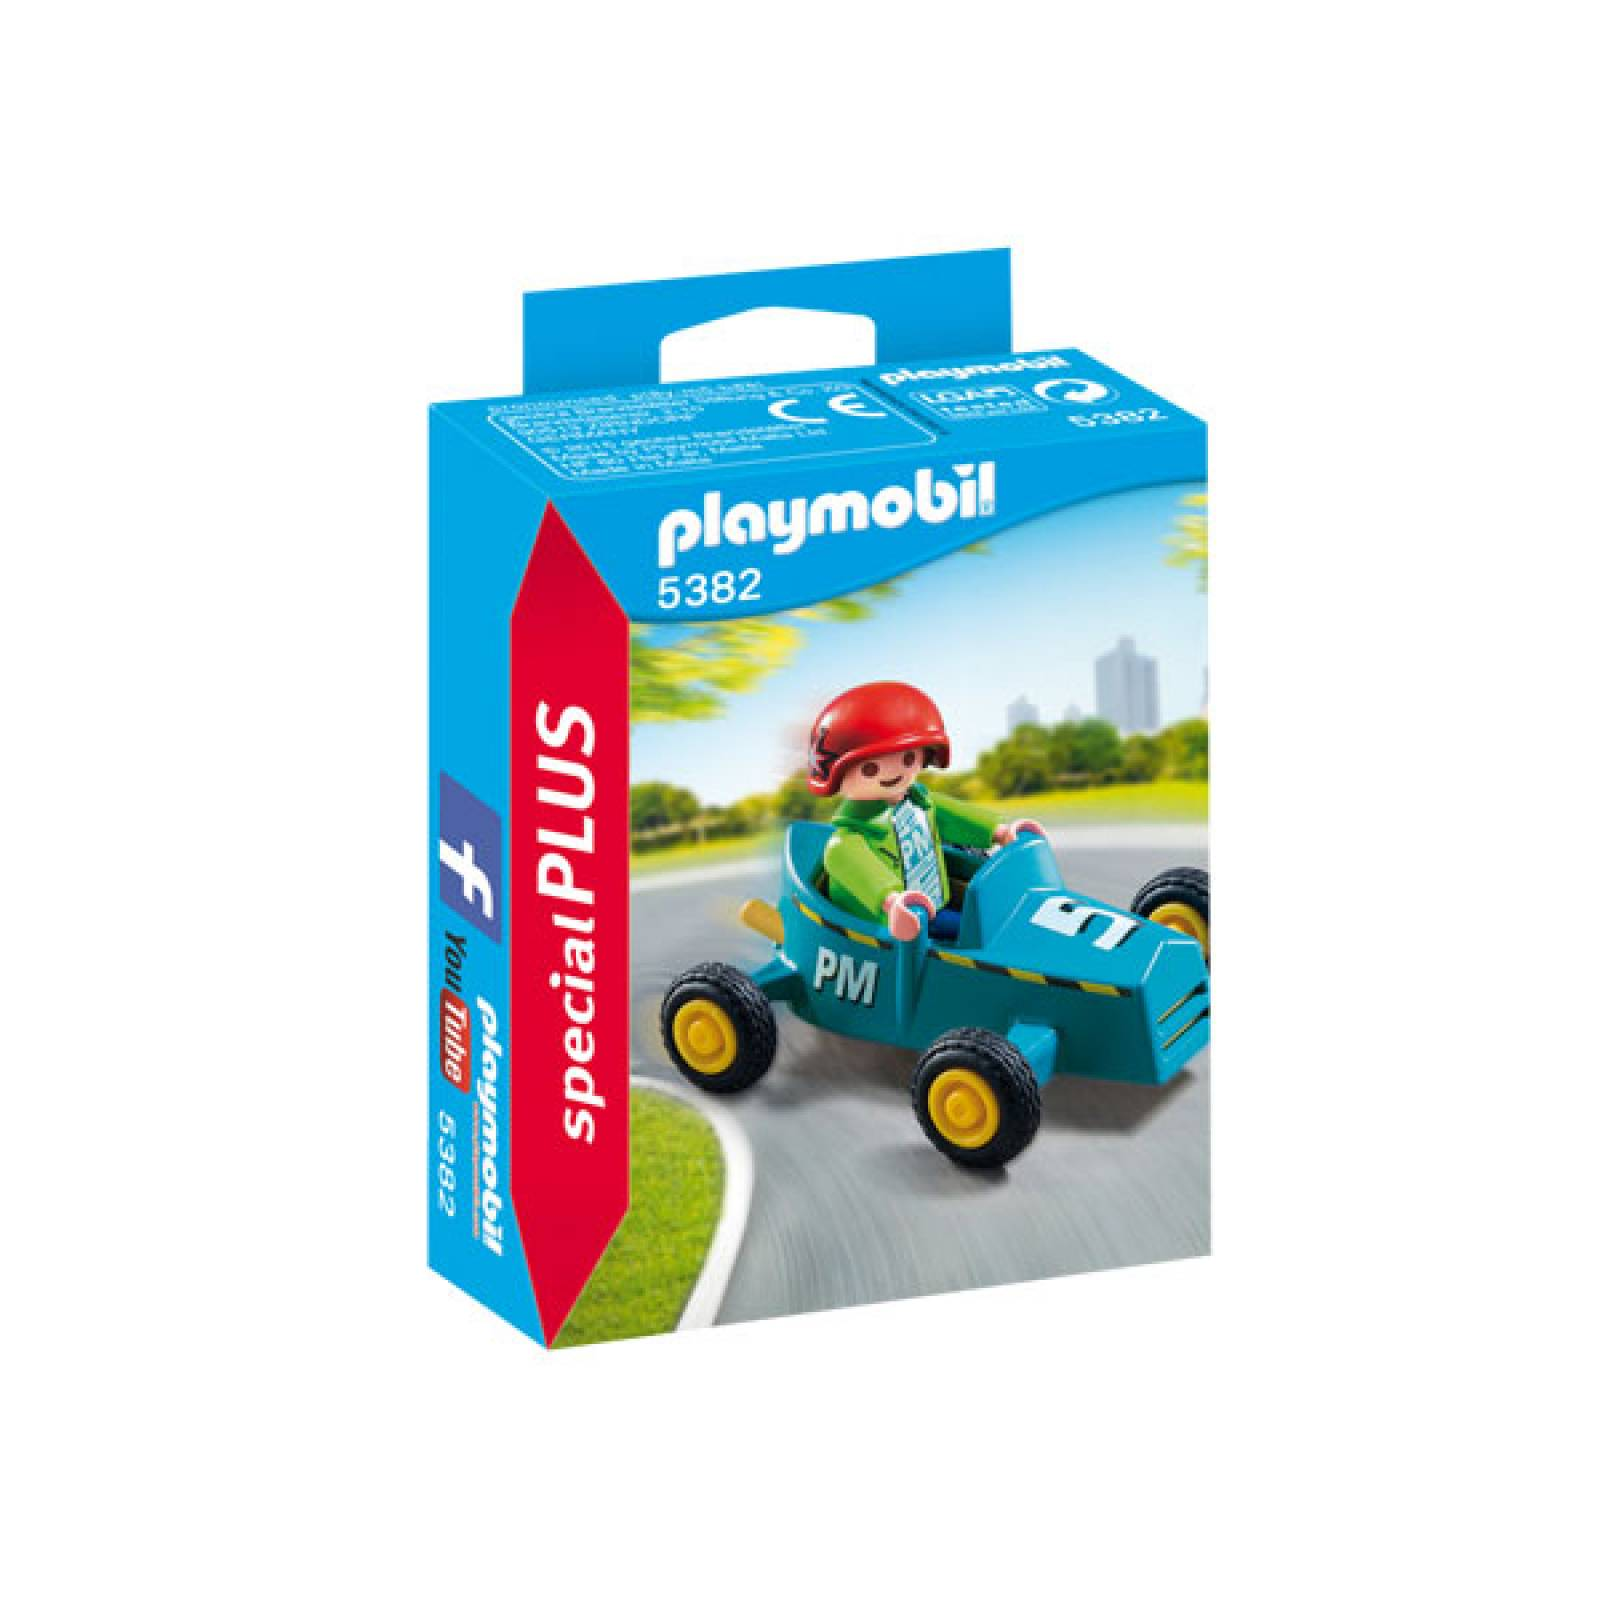 Boy With Go-Kart Special Plus Playmobil 5382 thumbnails